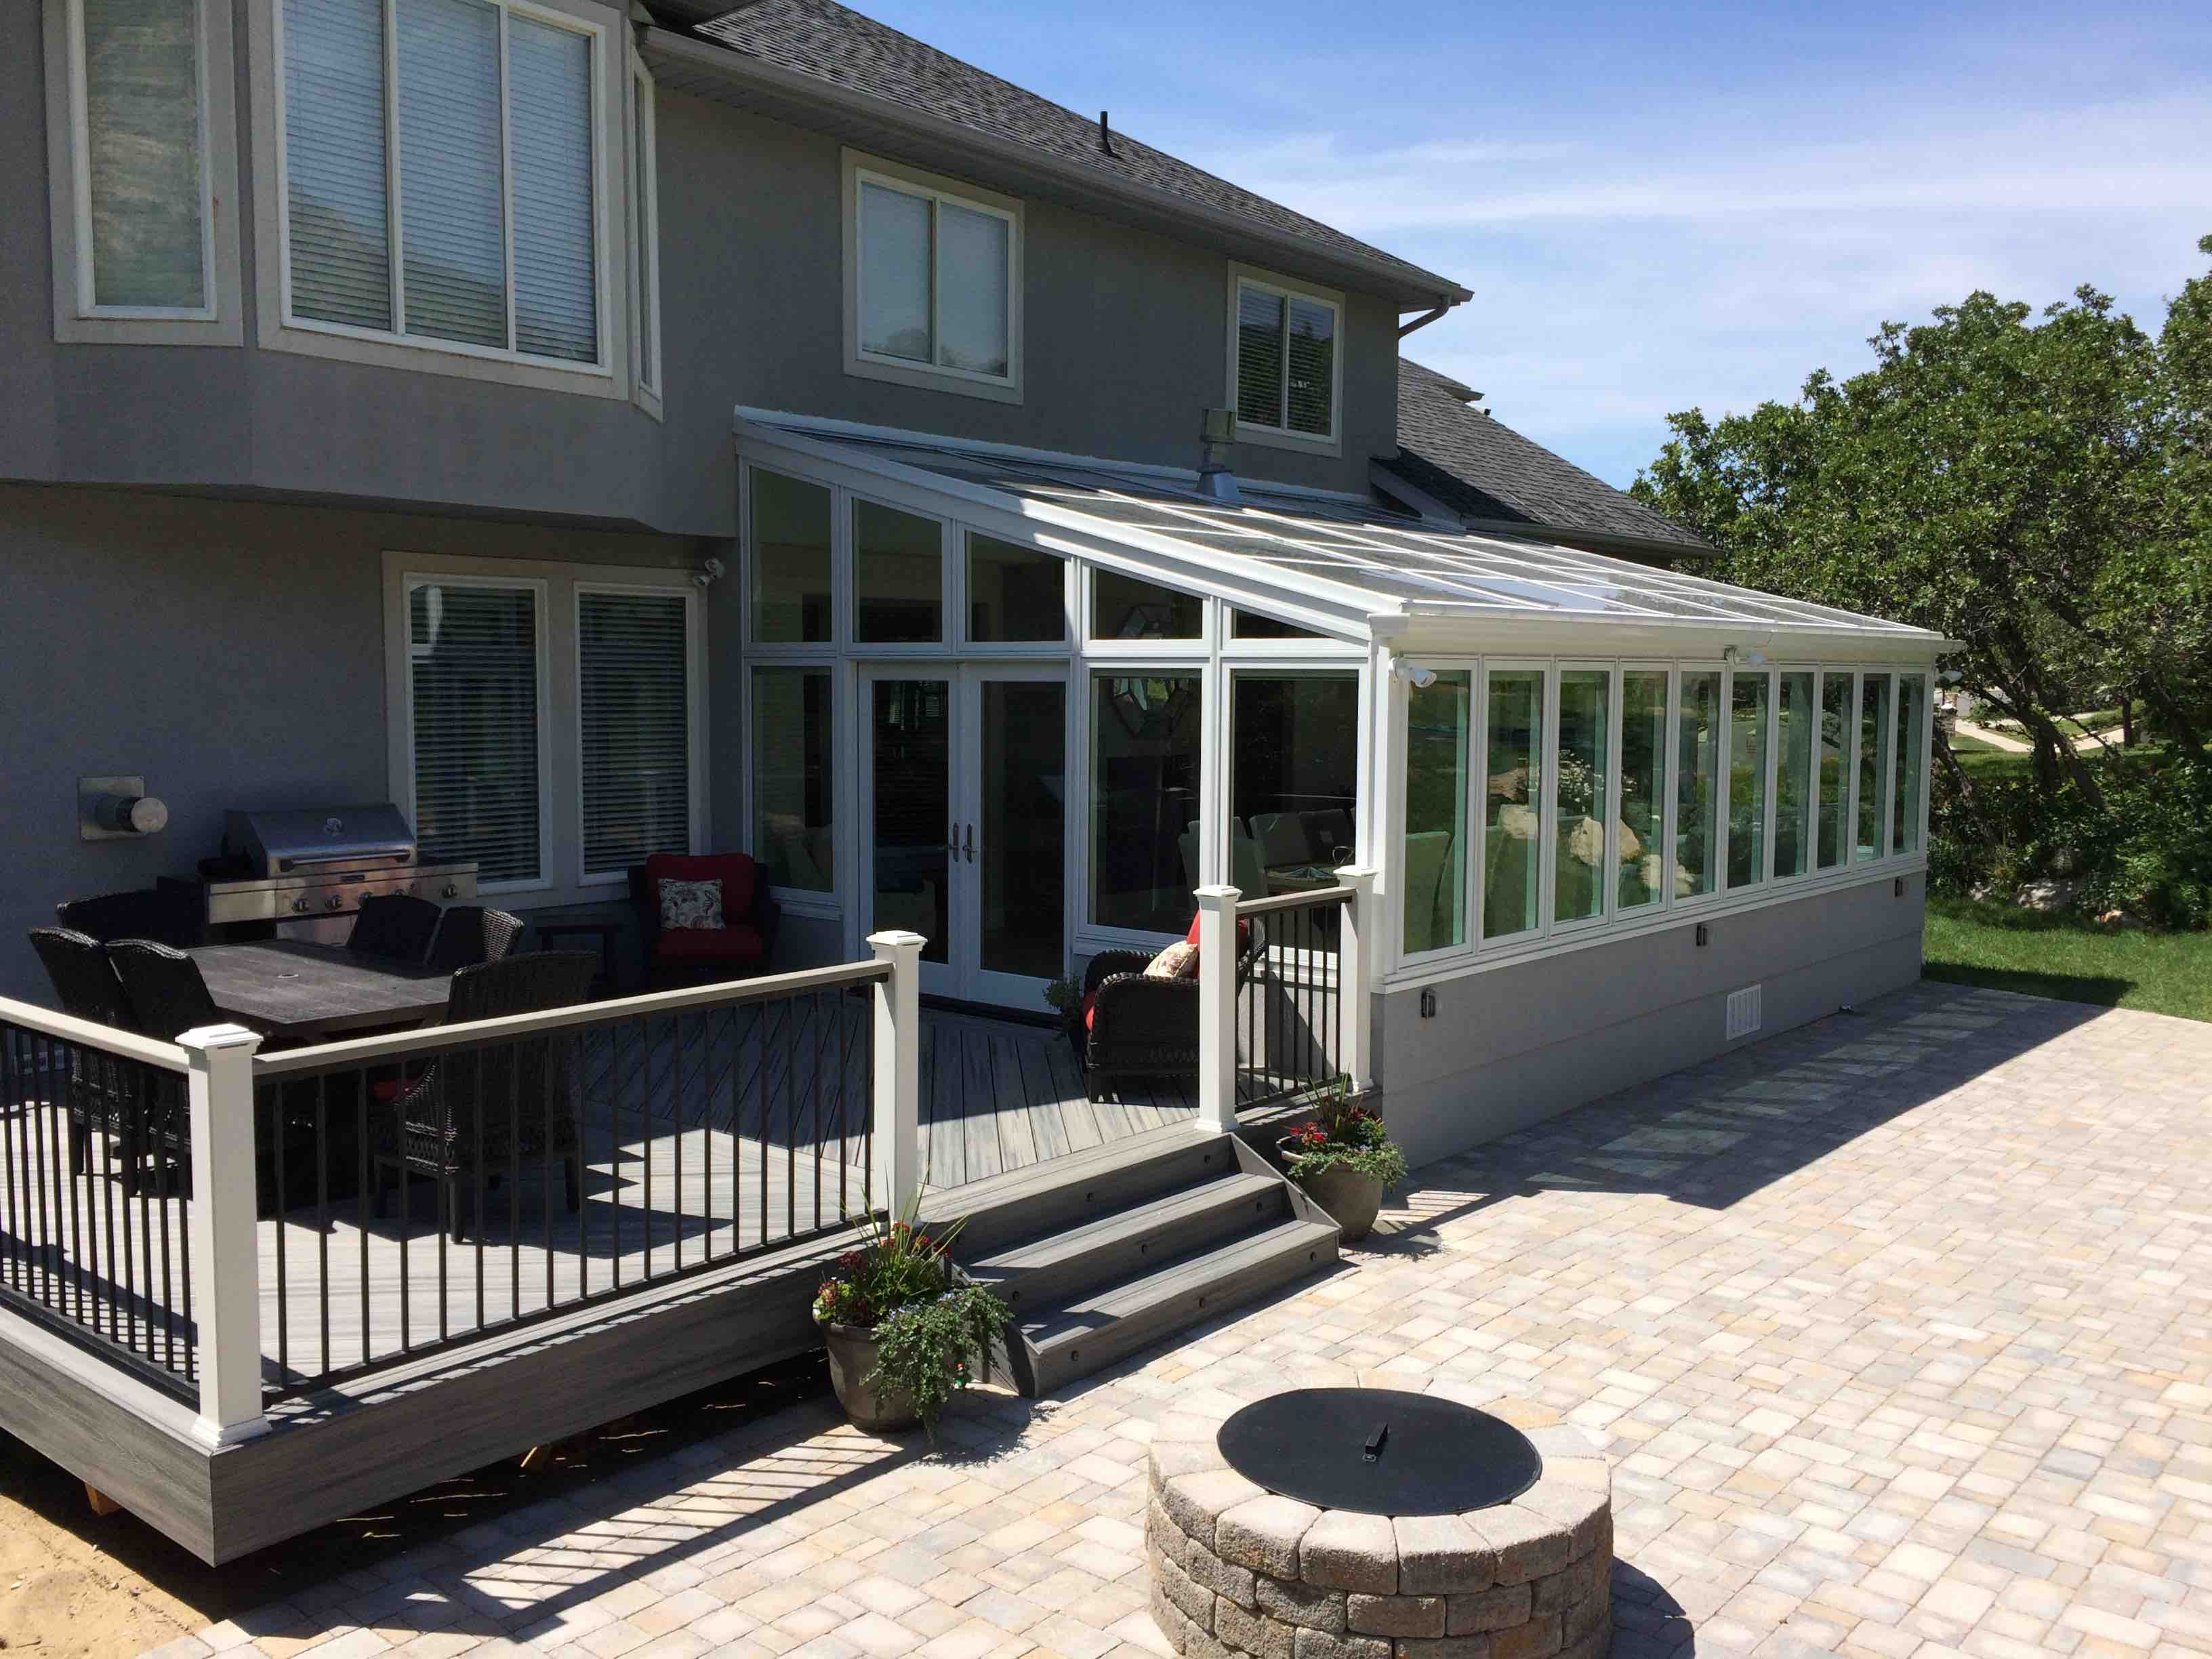 Sunrooms four seasons distributor budget glass nanaimo bc 4 season solarium